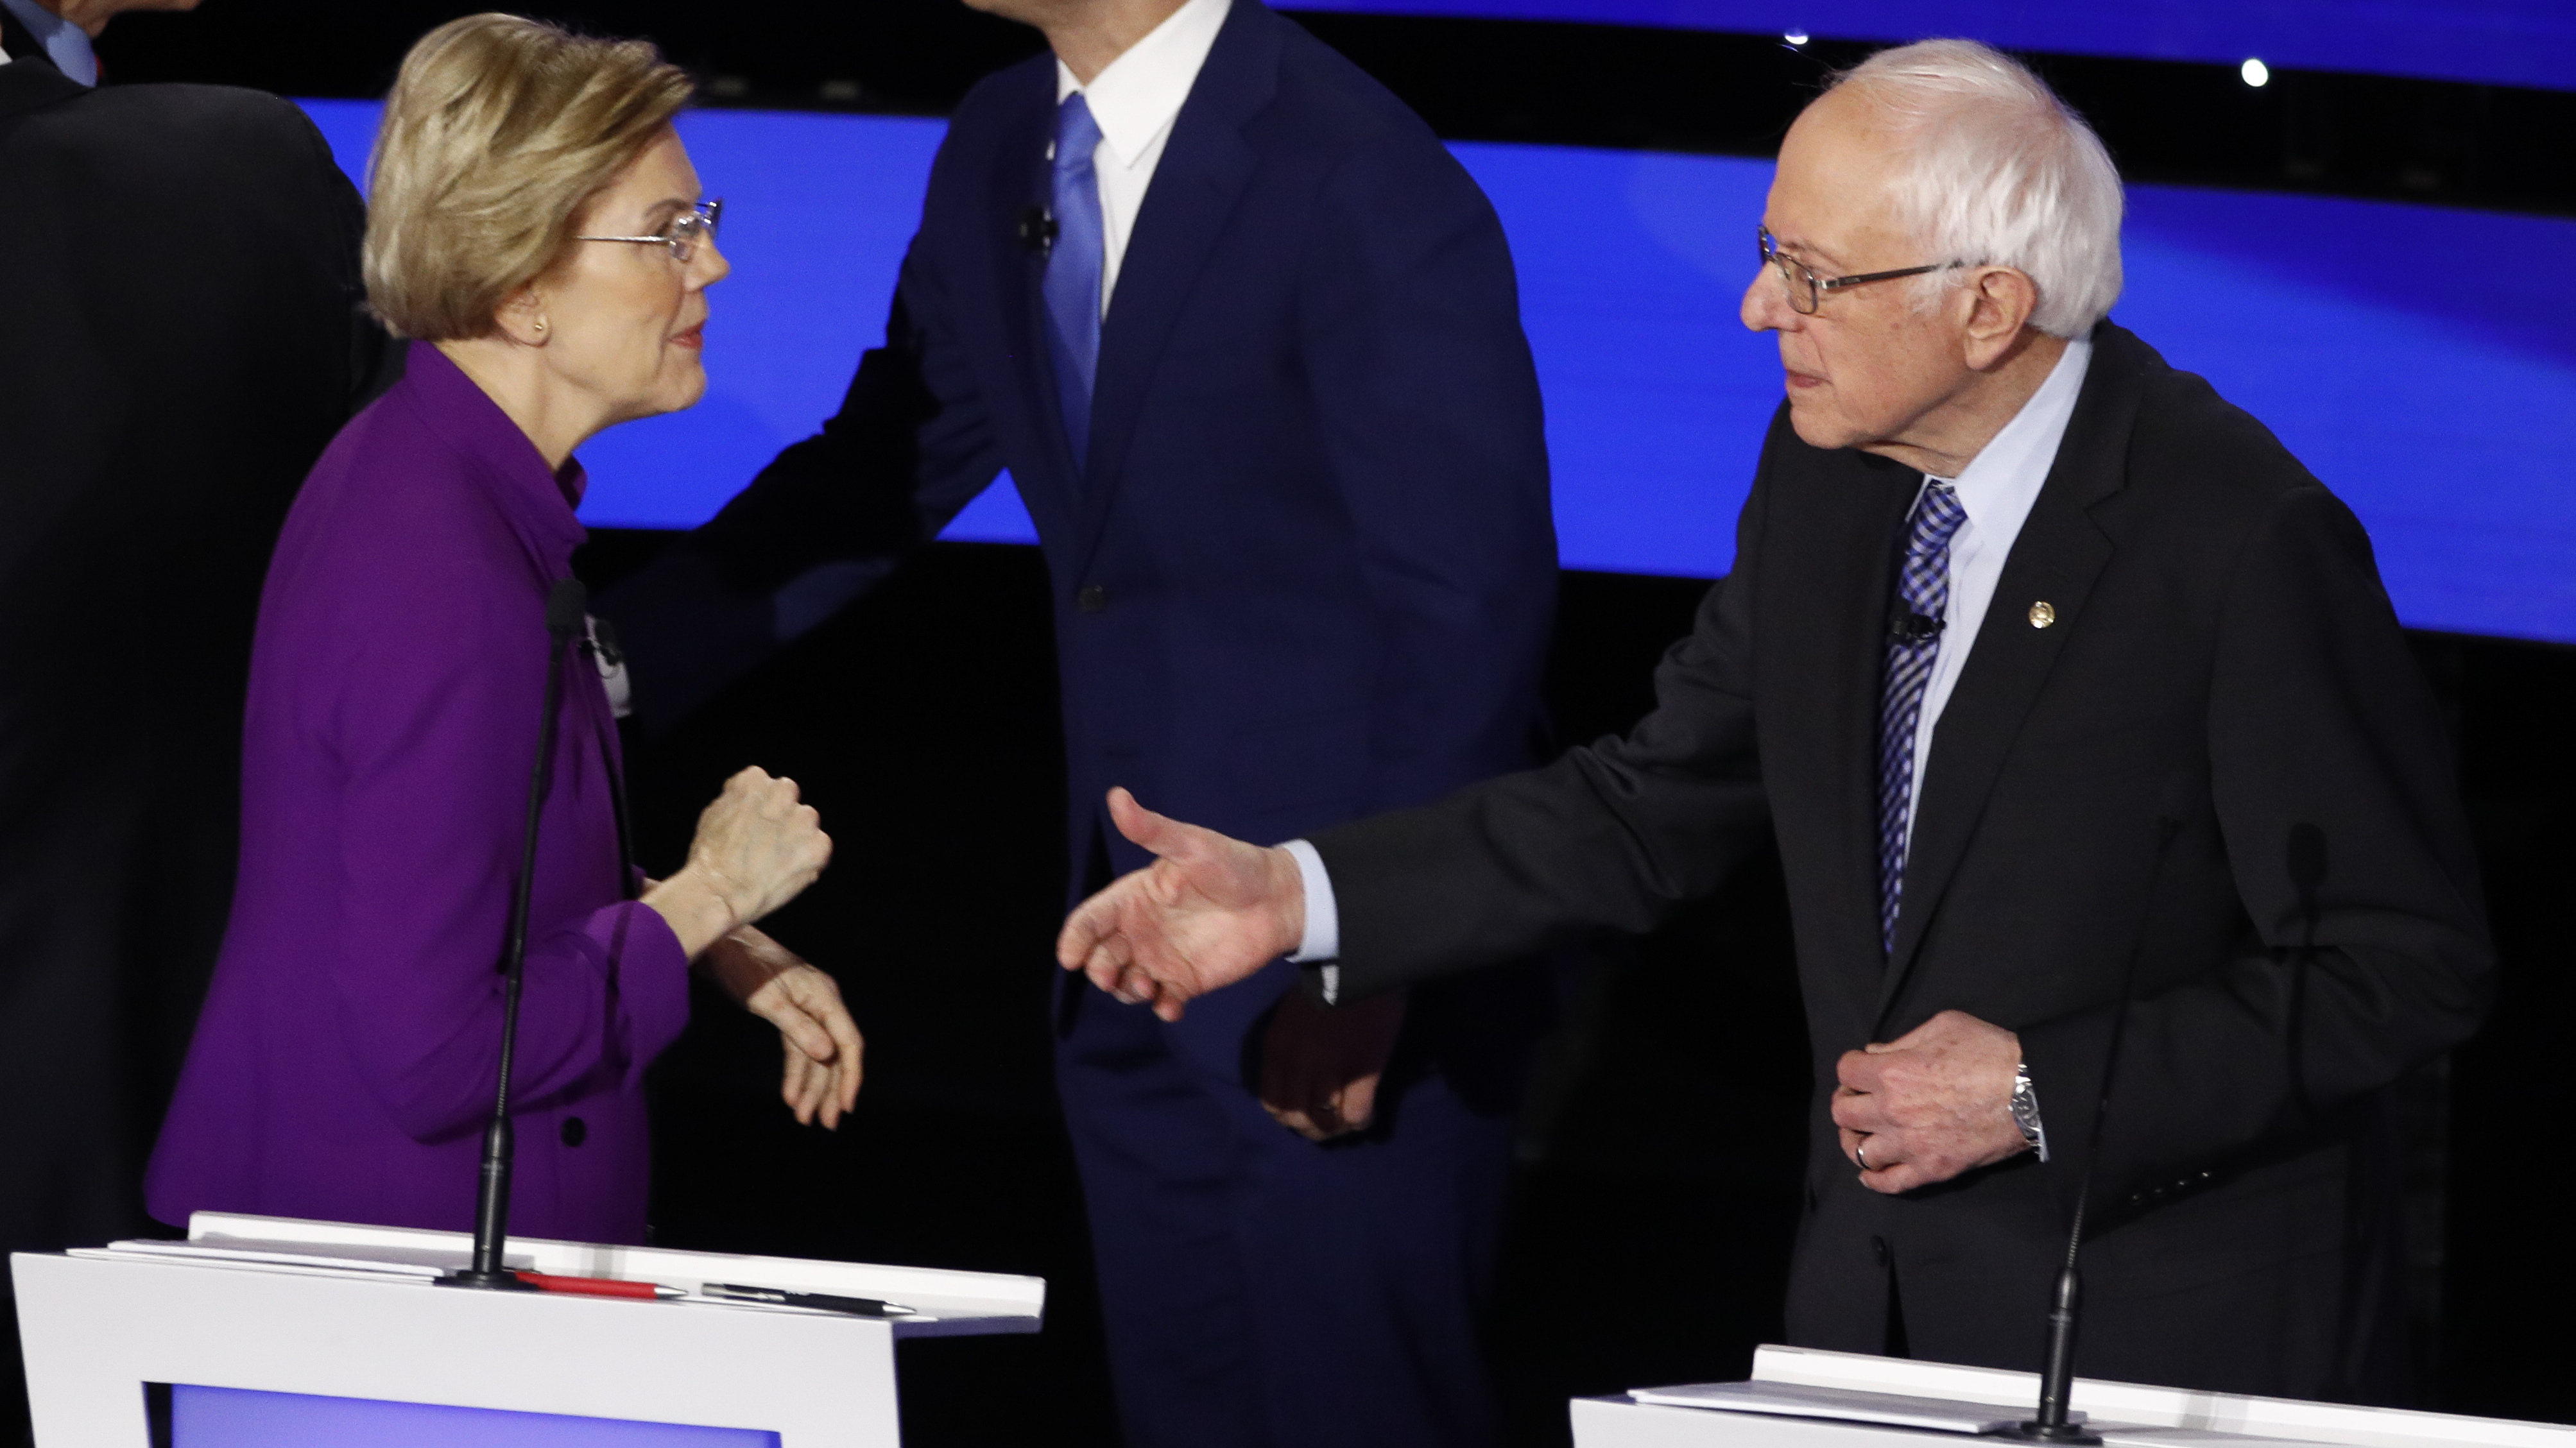 After Debate, Warren Told Sanders: 'I Think You Called Me A Liar'